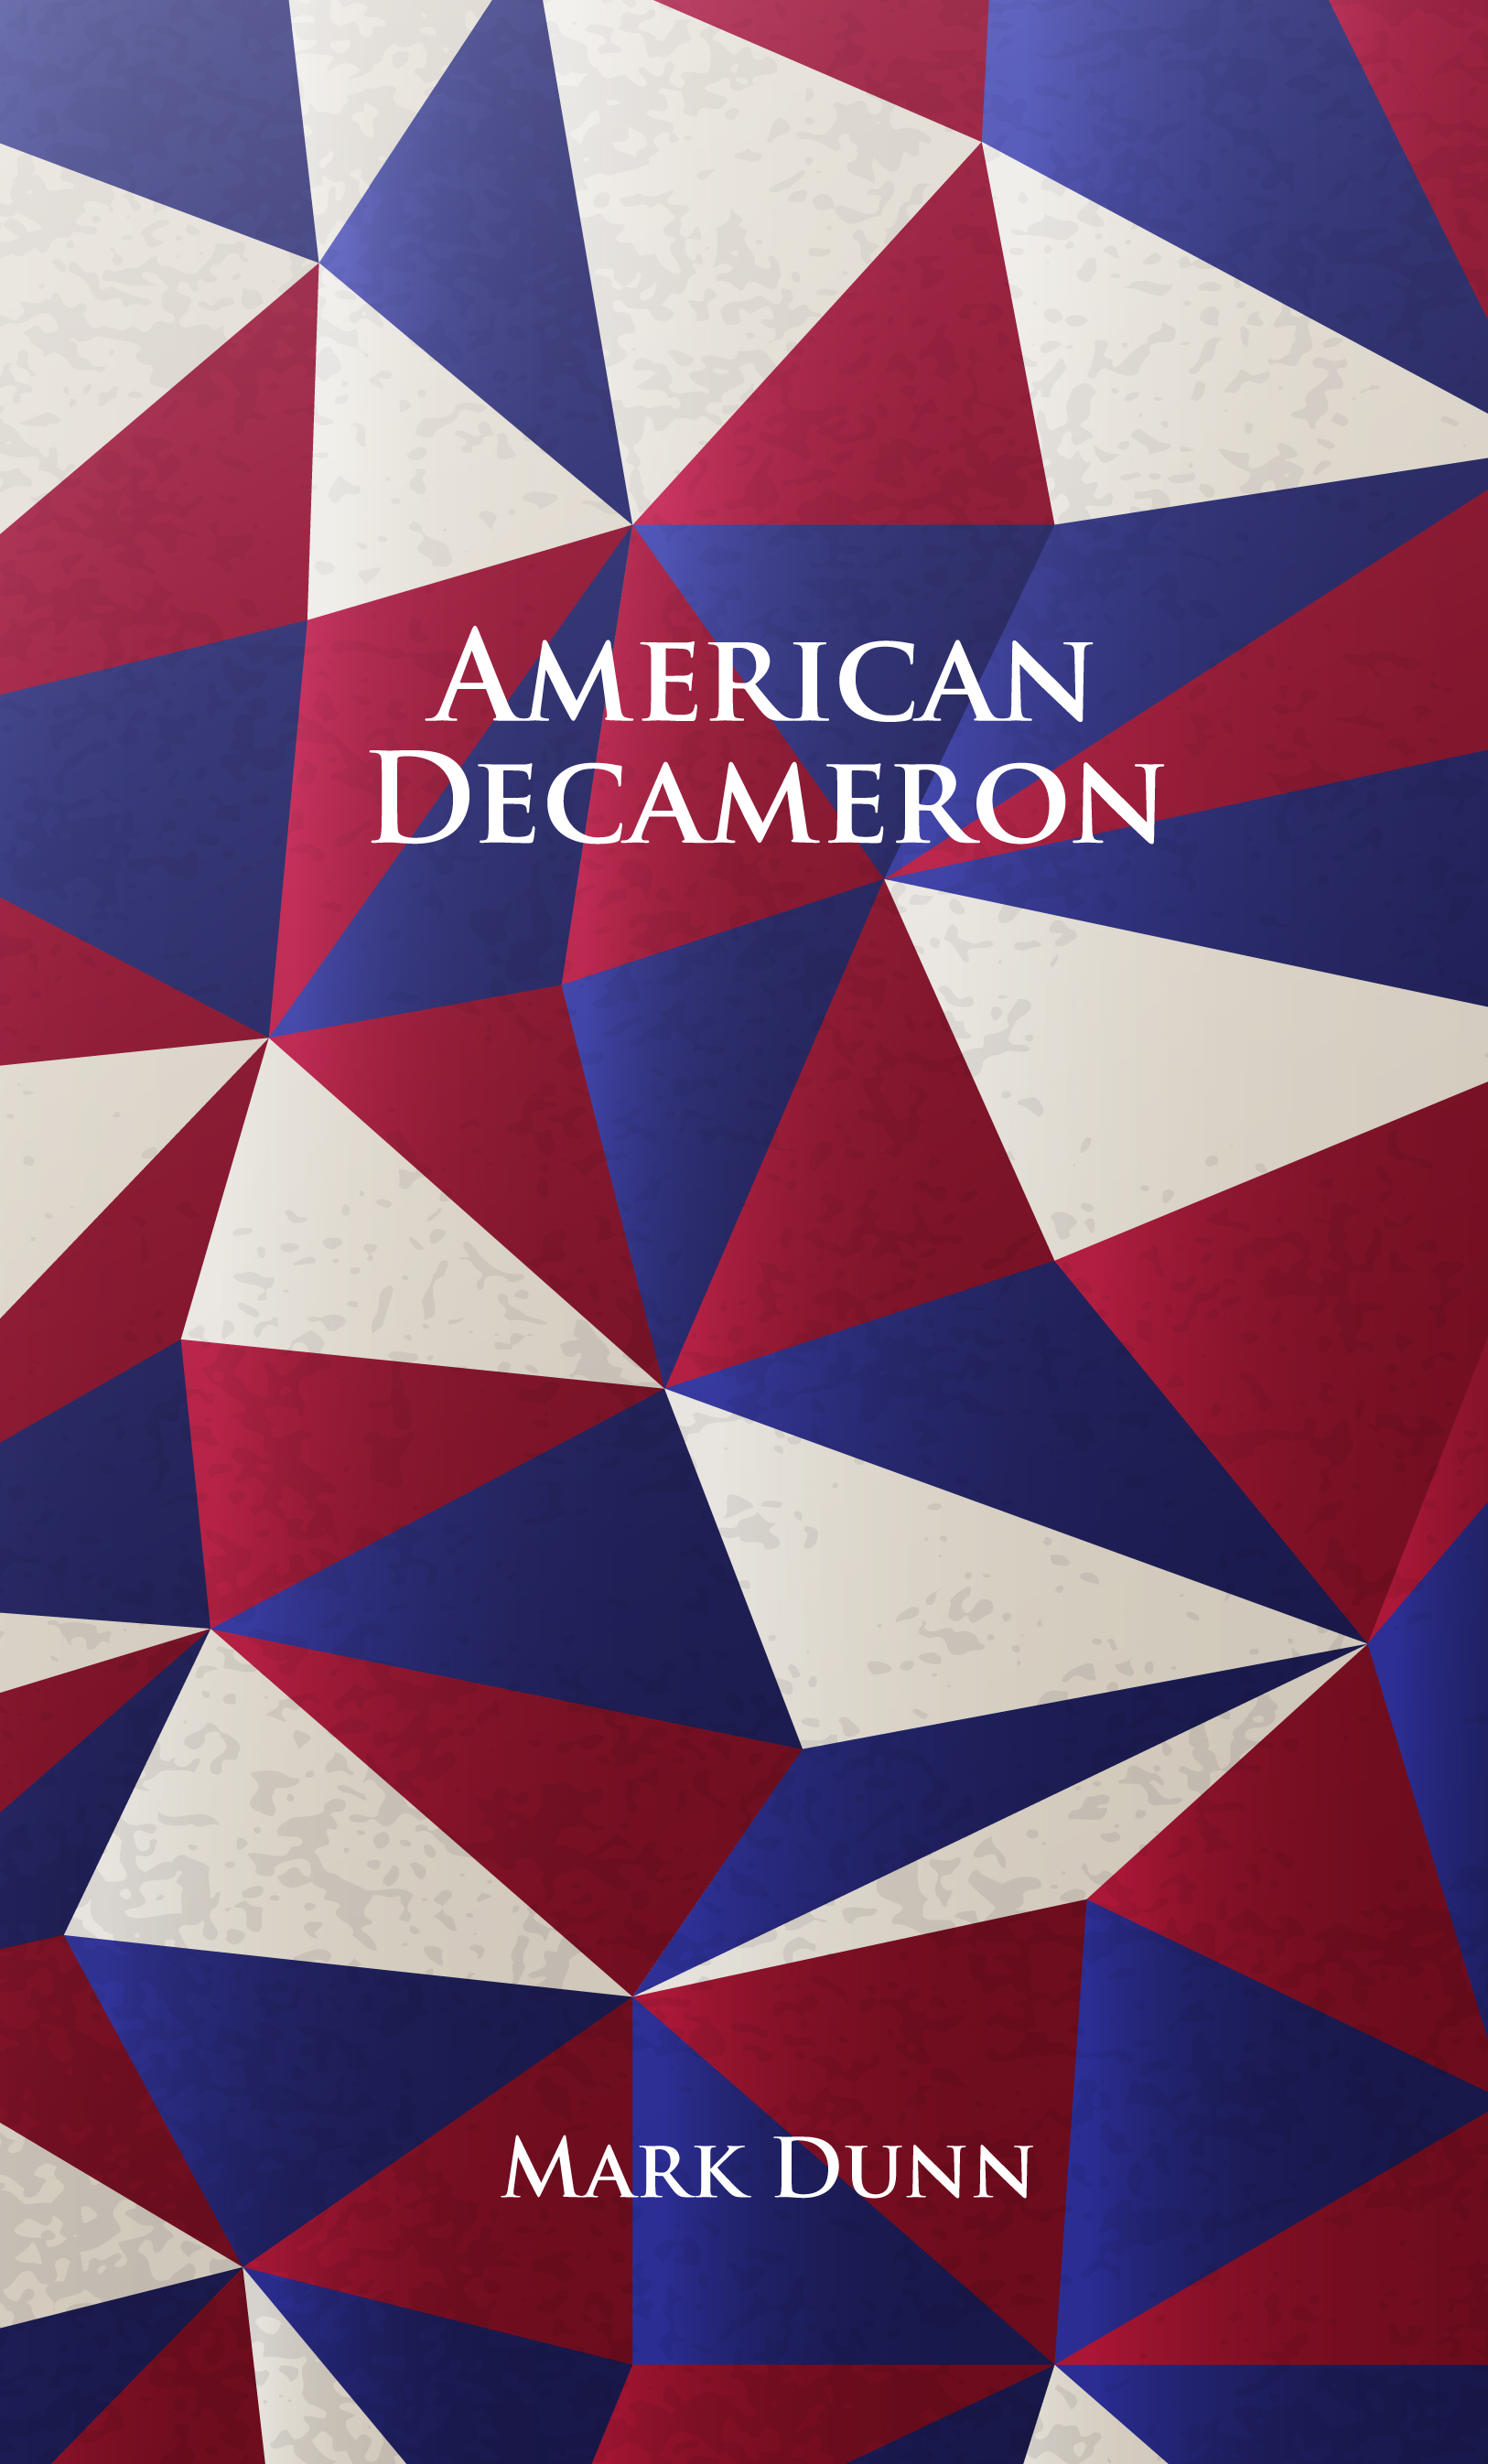 American Decameron By: Mark Dunn